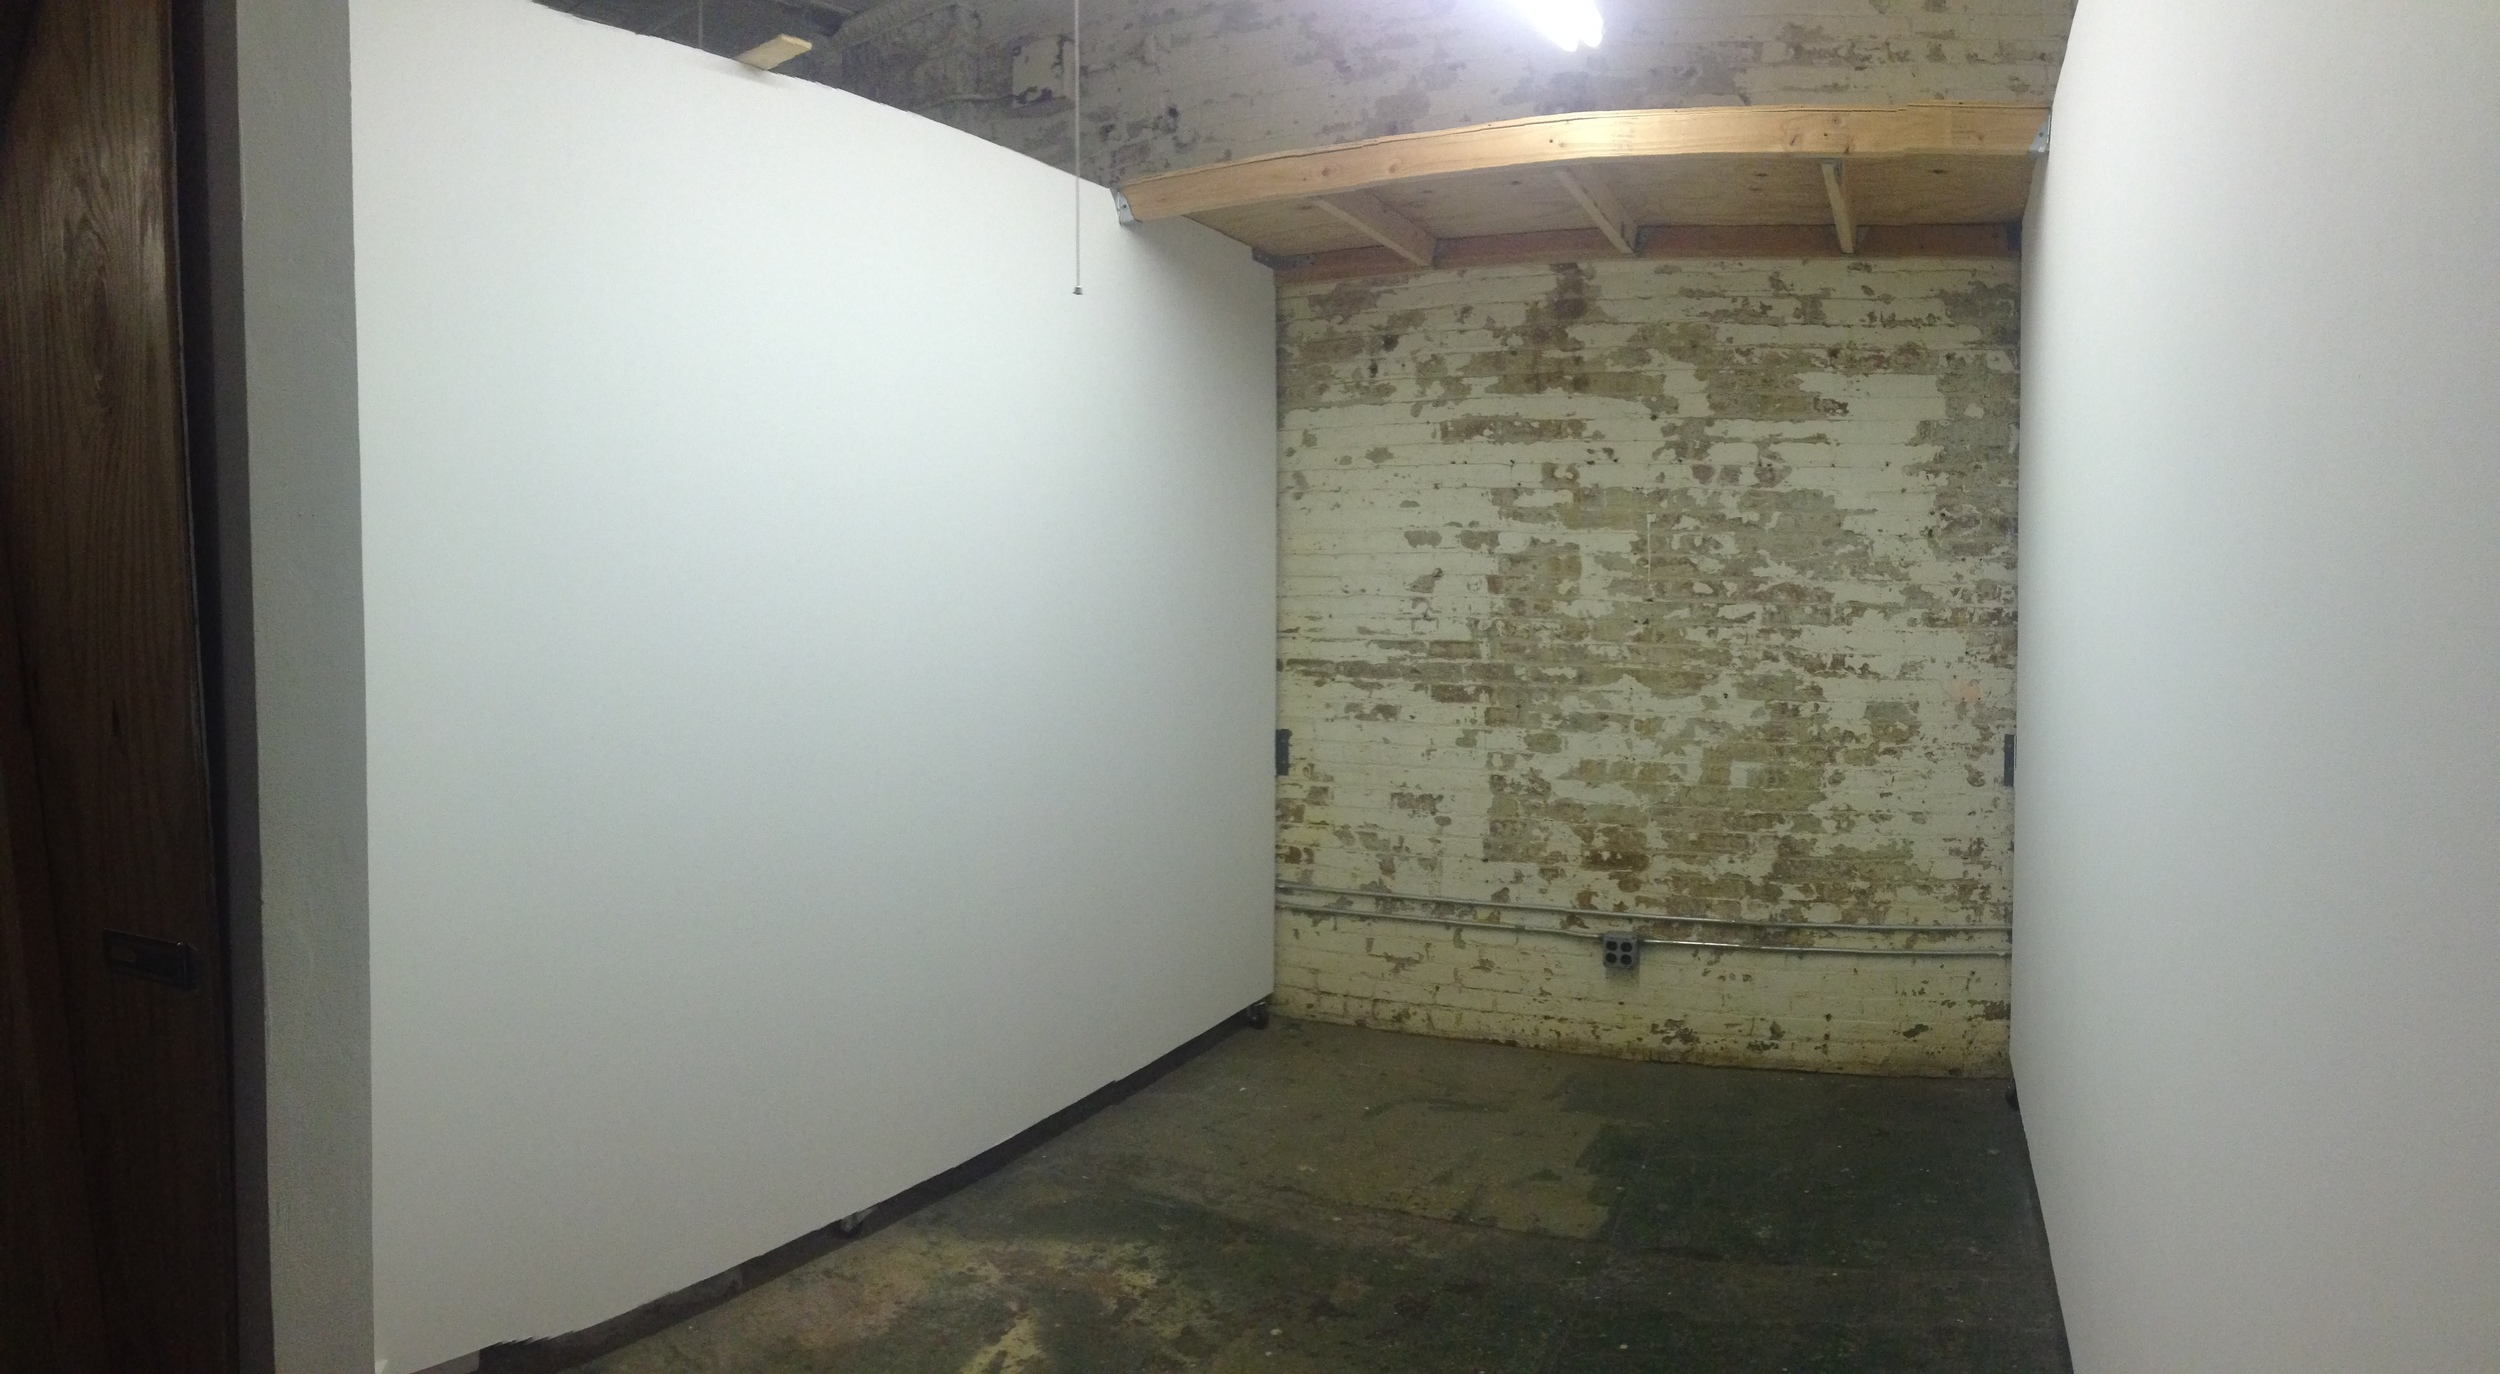 Ground Floor Studio - about 100 square feet, nice white walls reinforced with plywood, and most spaces have a wide shelf.